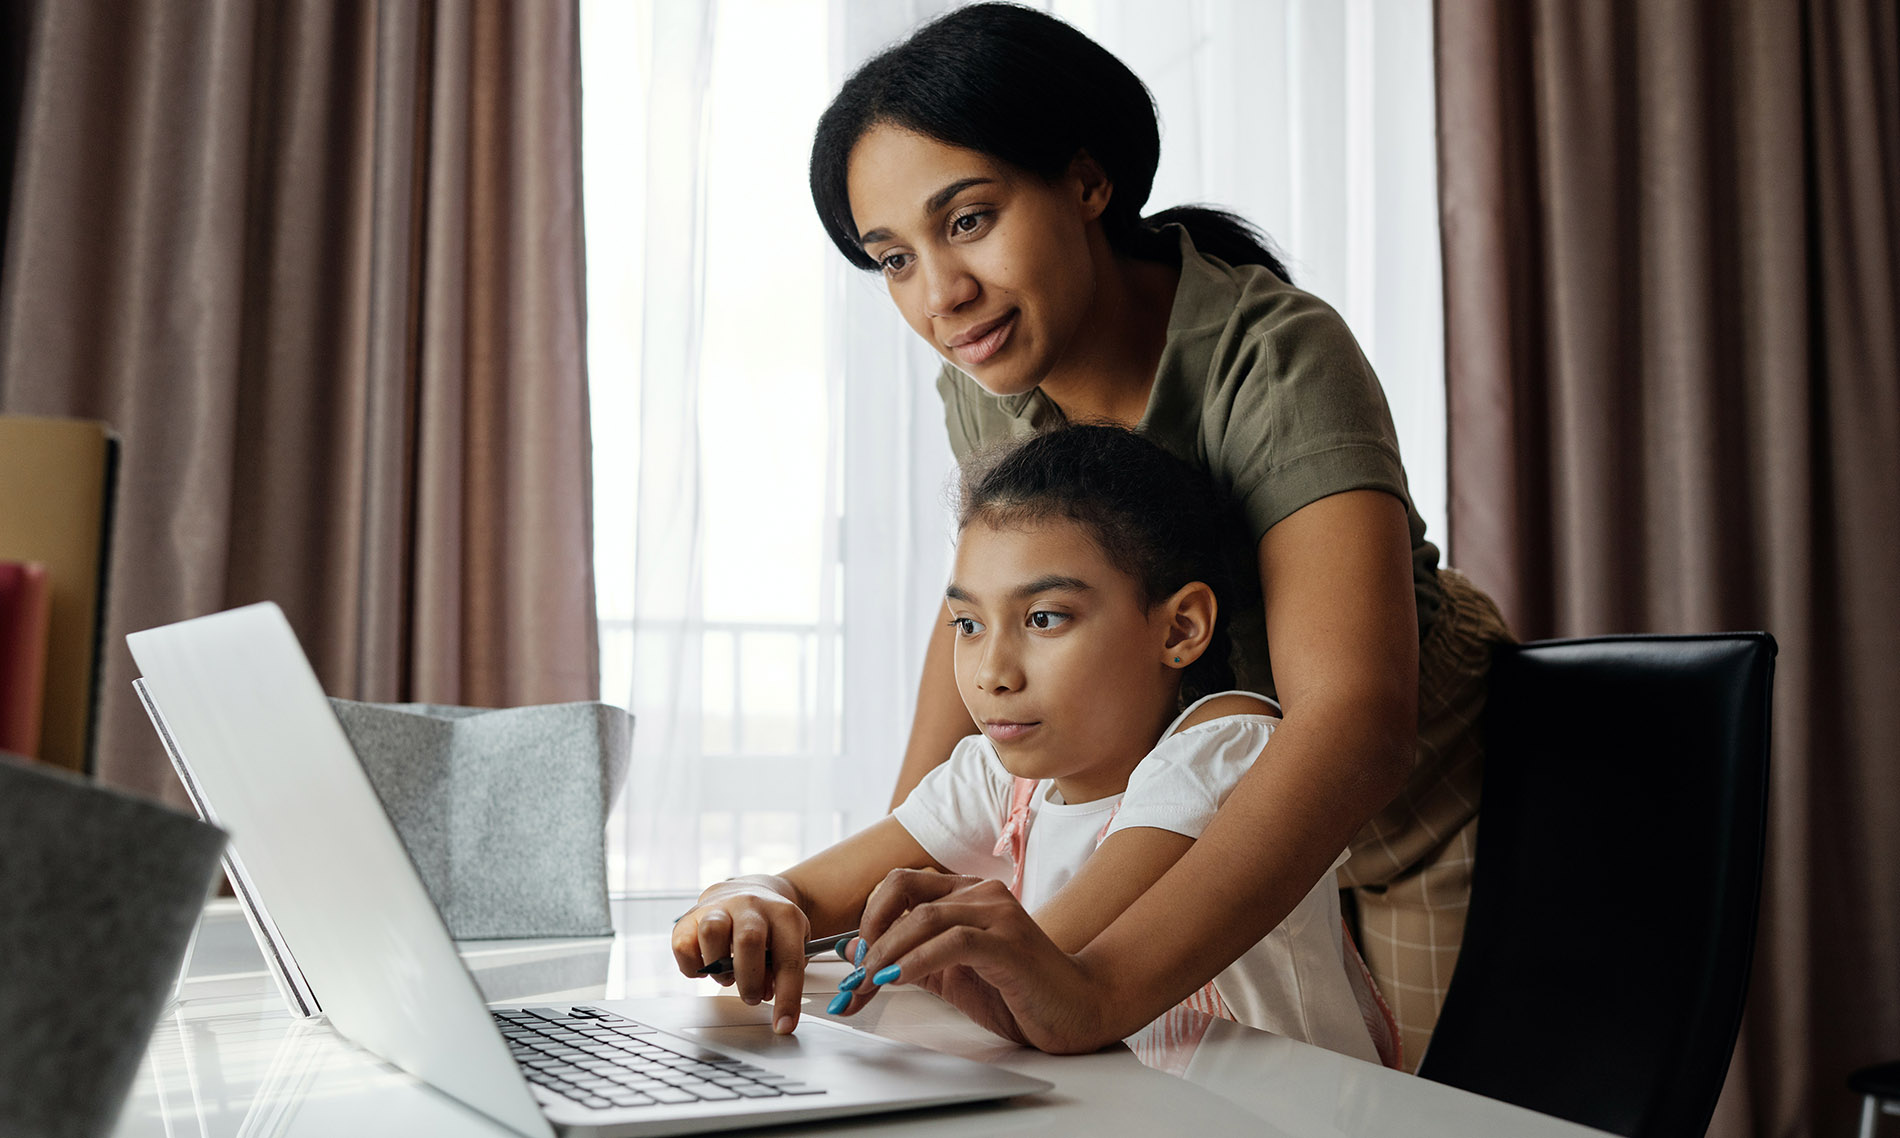 A mother stands behind her daughter who is seating at a desk at home. They are working on a laptop together.